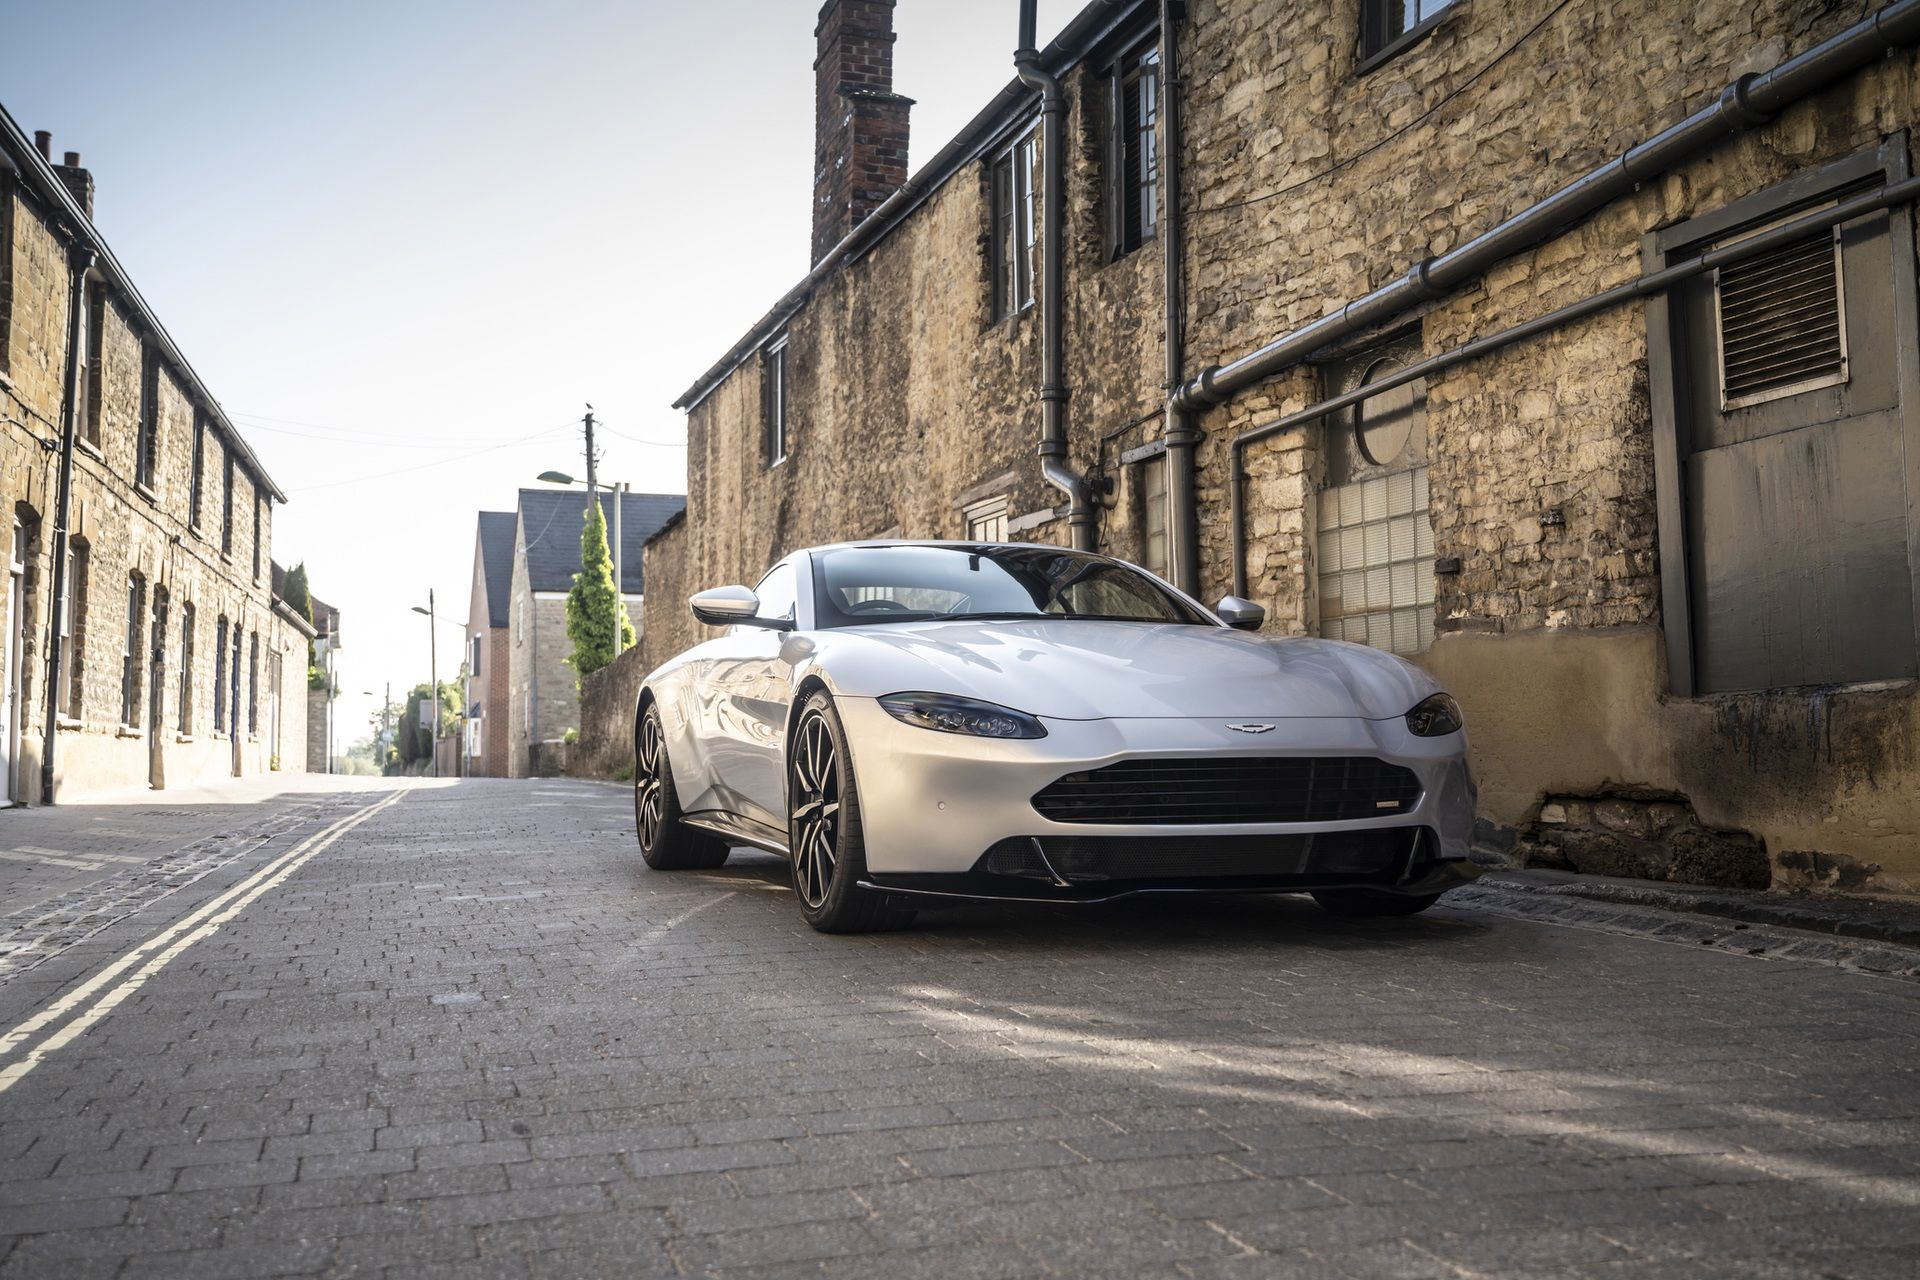 6.-Revenant-Automotive-Aston-Martin-Vantage-bumper-in-lightweight-composite